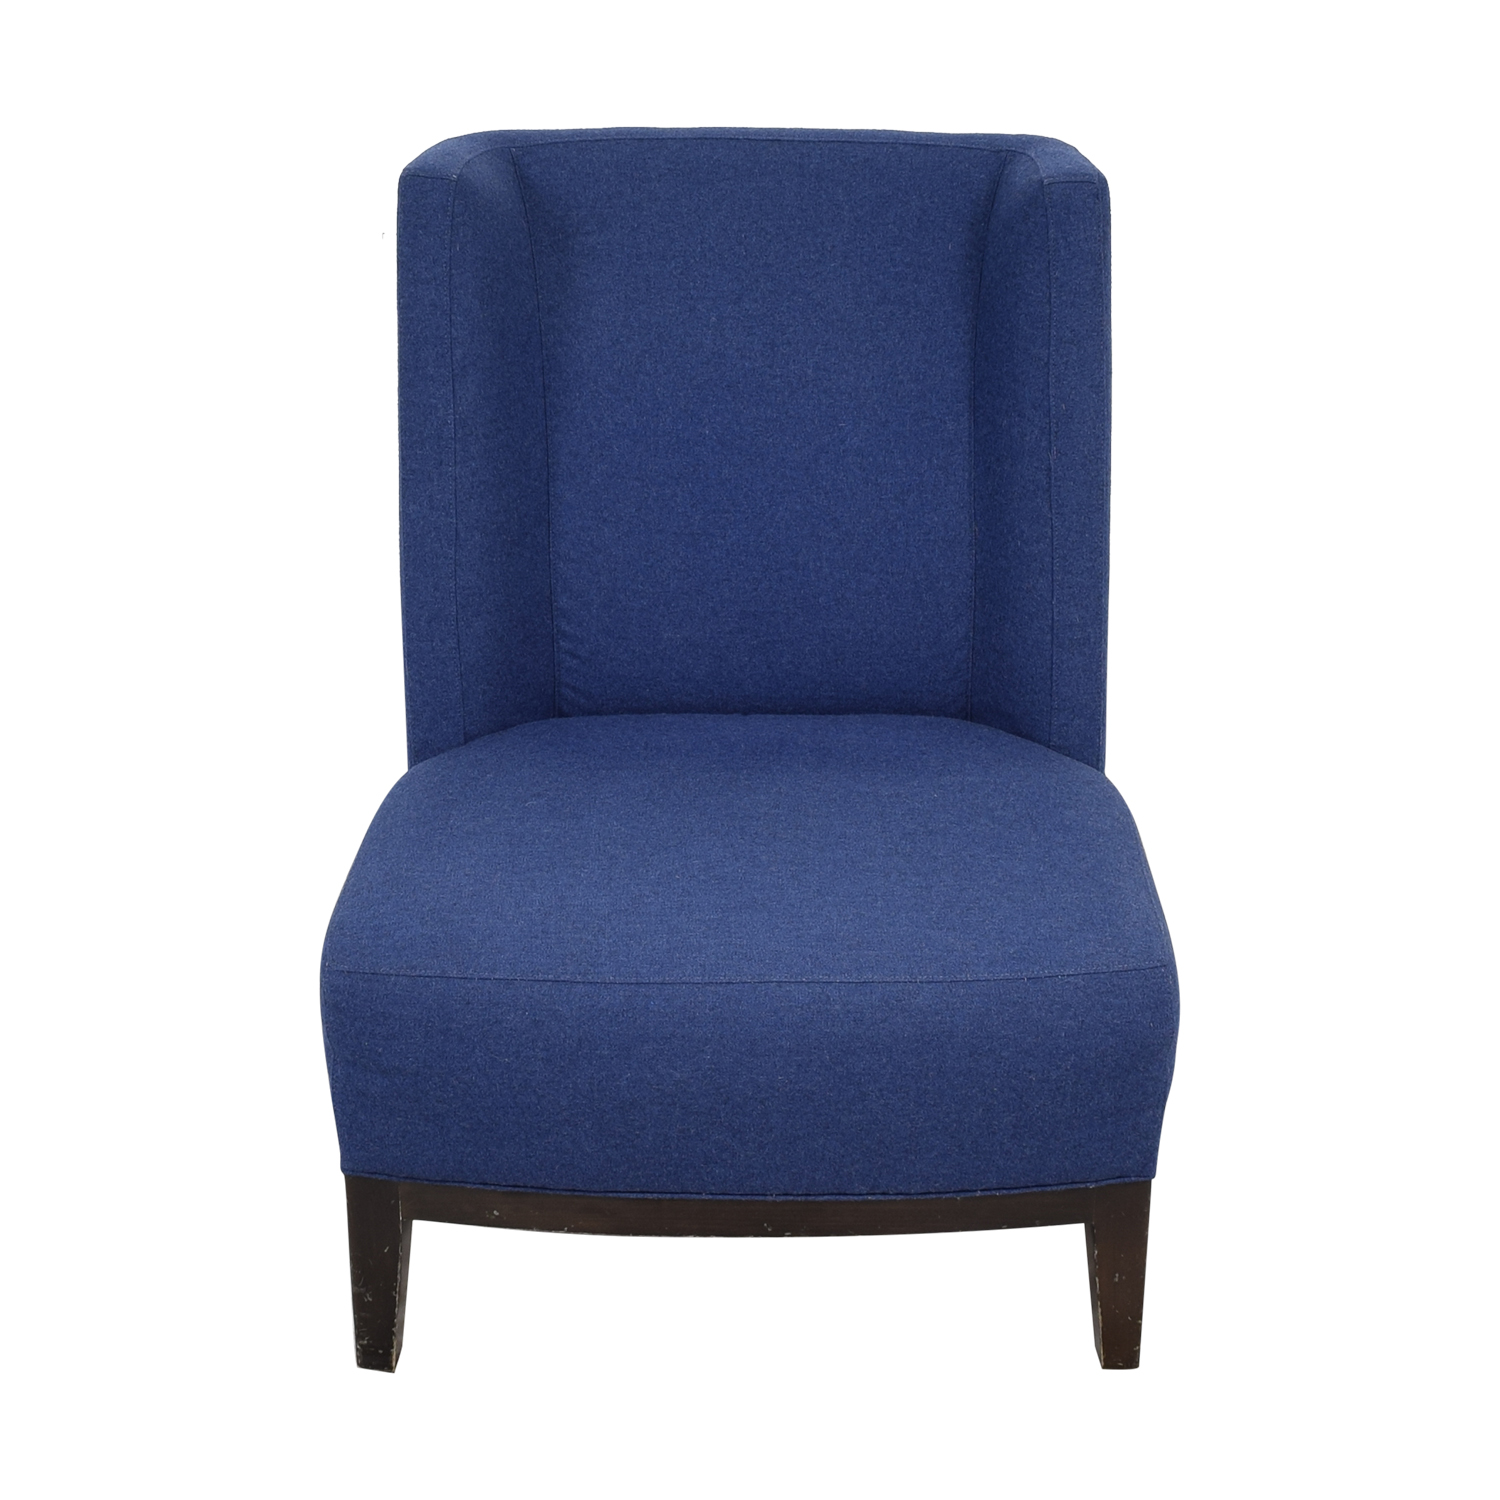 shop Lillian August Baines Accent Chair Lillian August Chairs